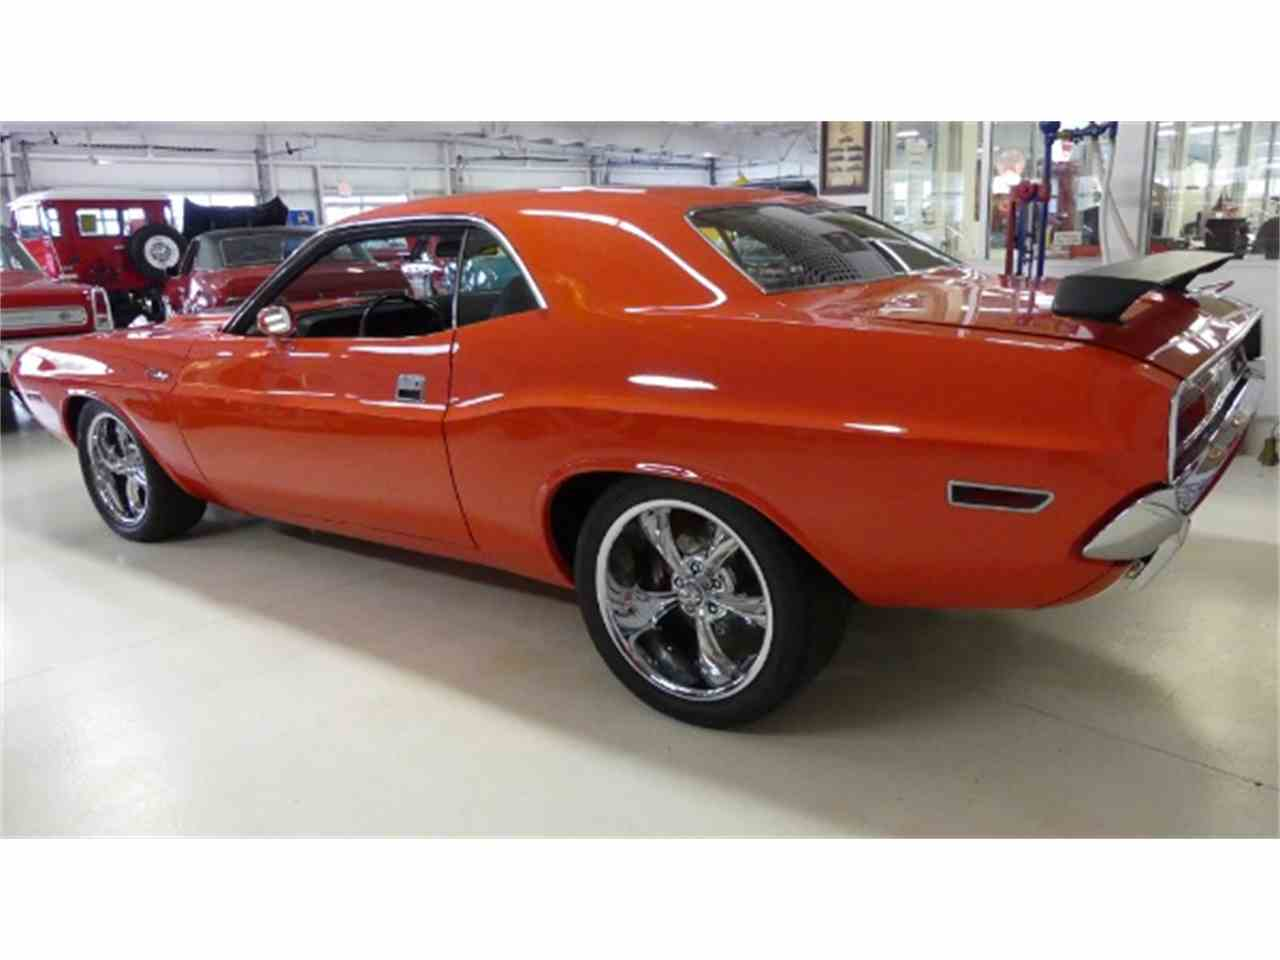 Large Picture of '70 Dodge Challenger located in Ohio - $54,995.00 - M9BD